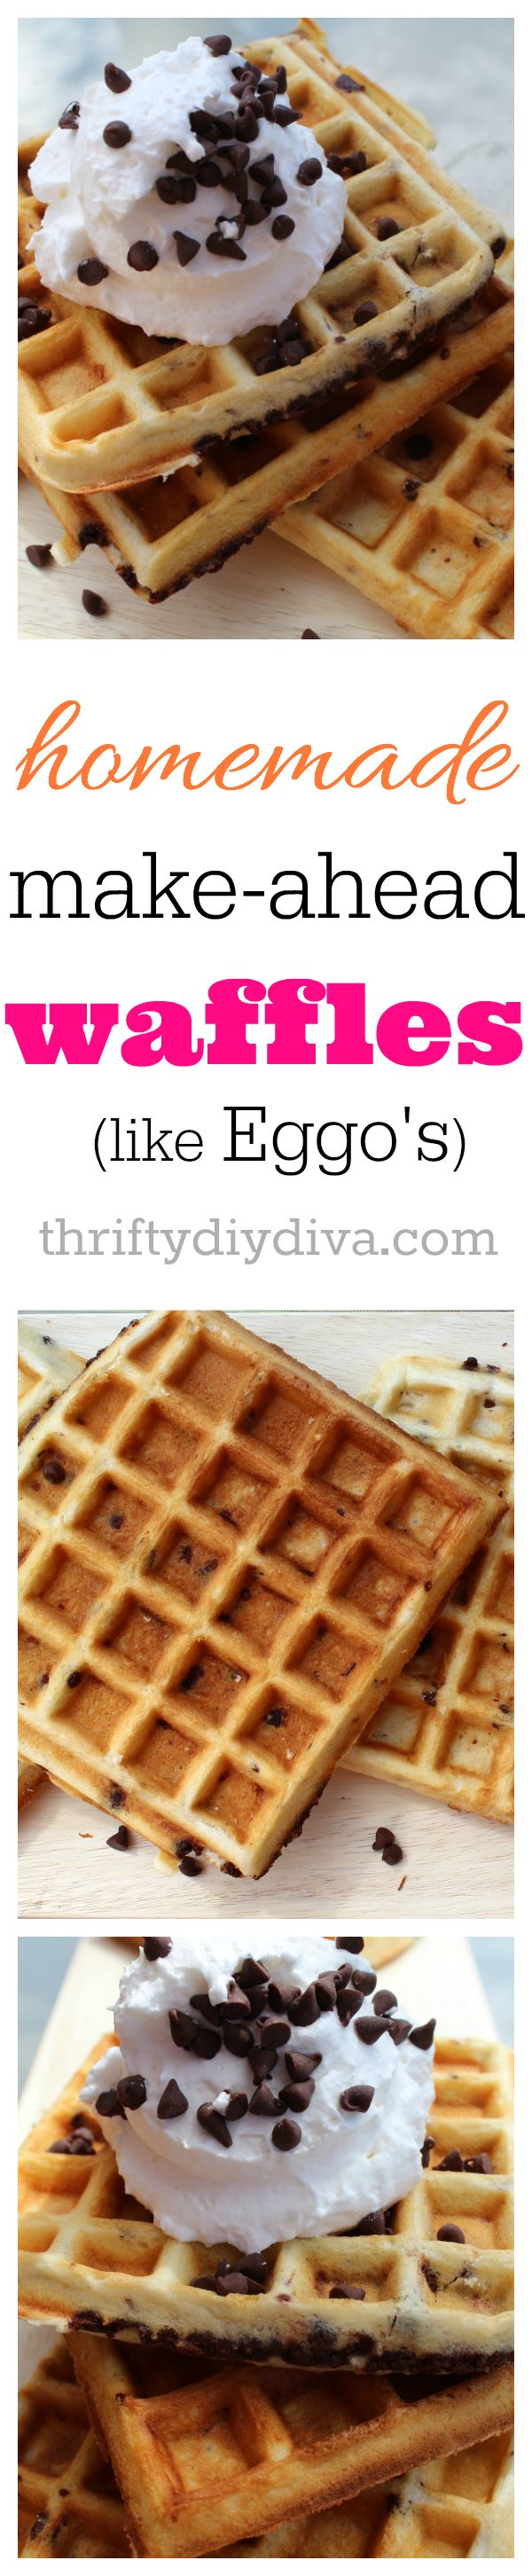 Make Ahead Freezer Waffles Like Eggo's - not a copycat recipe, but BETTER! Perfect for those busy mornings but you still want a delicious breakfast.